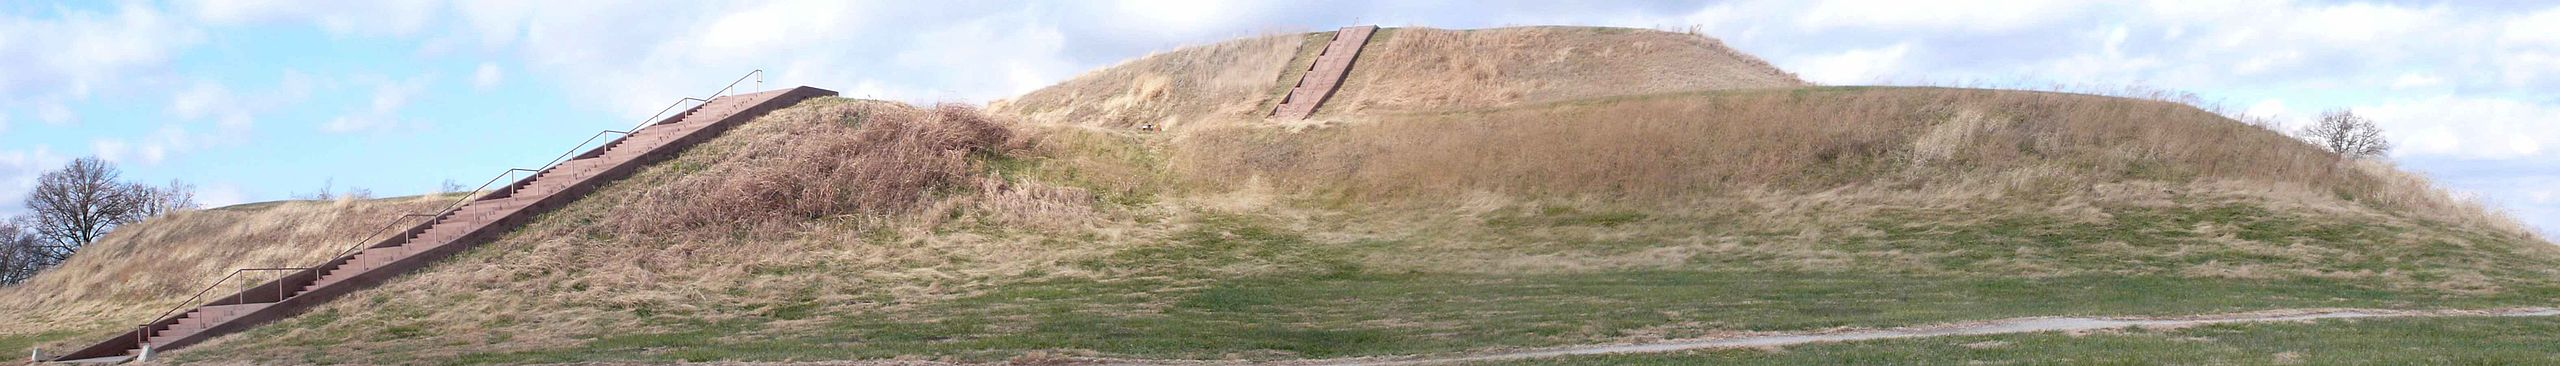 Cahokia Mounds State Historic Site – Travel guide at Wikivoyage